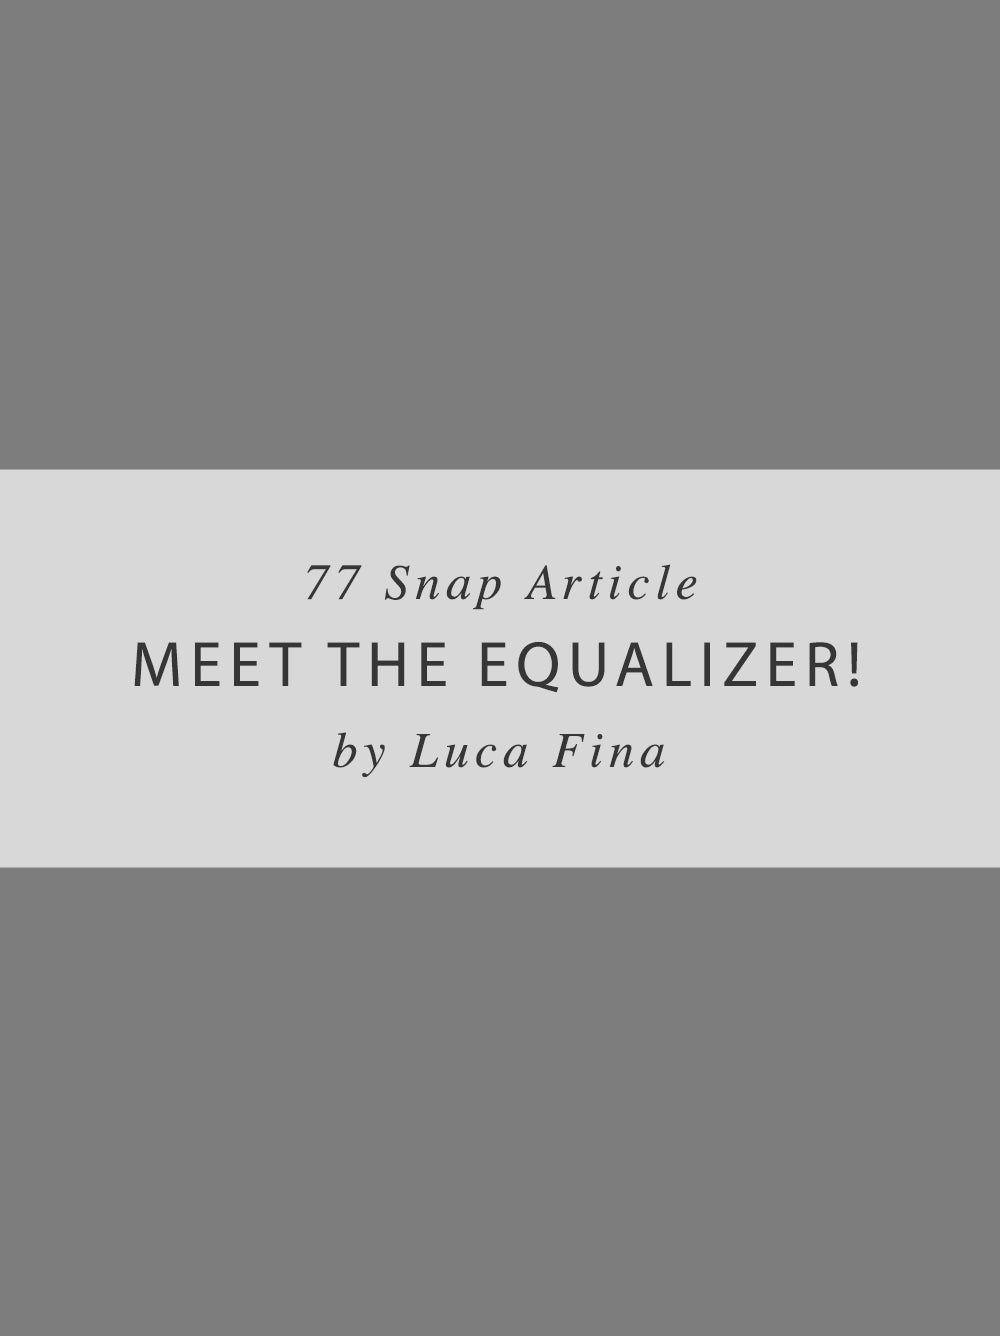 Meet the Equalizer - Snap Article - Mix My Music